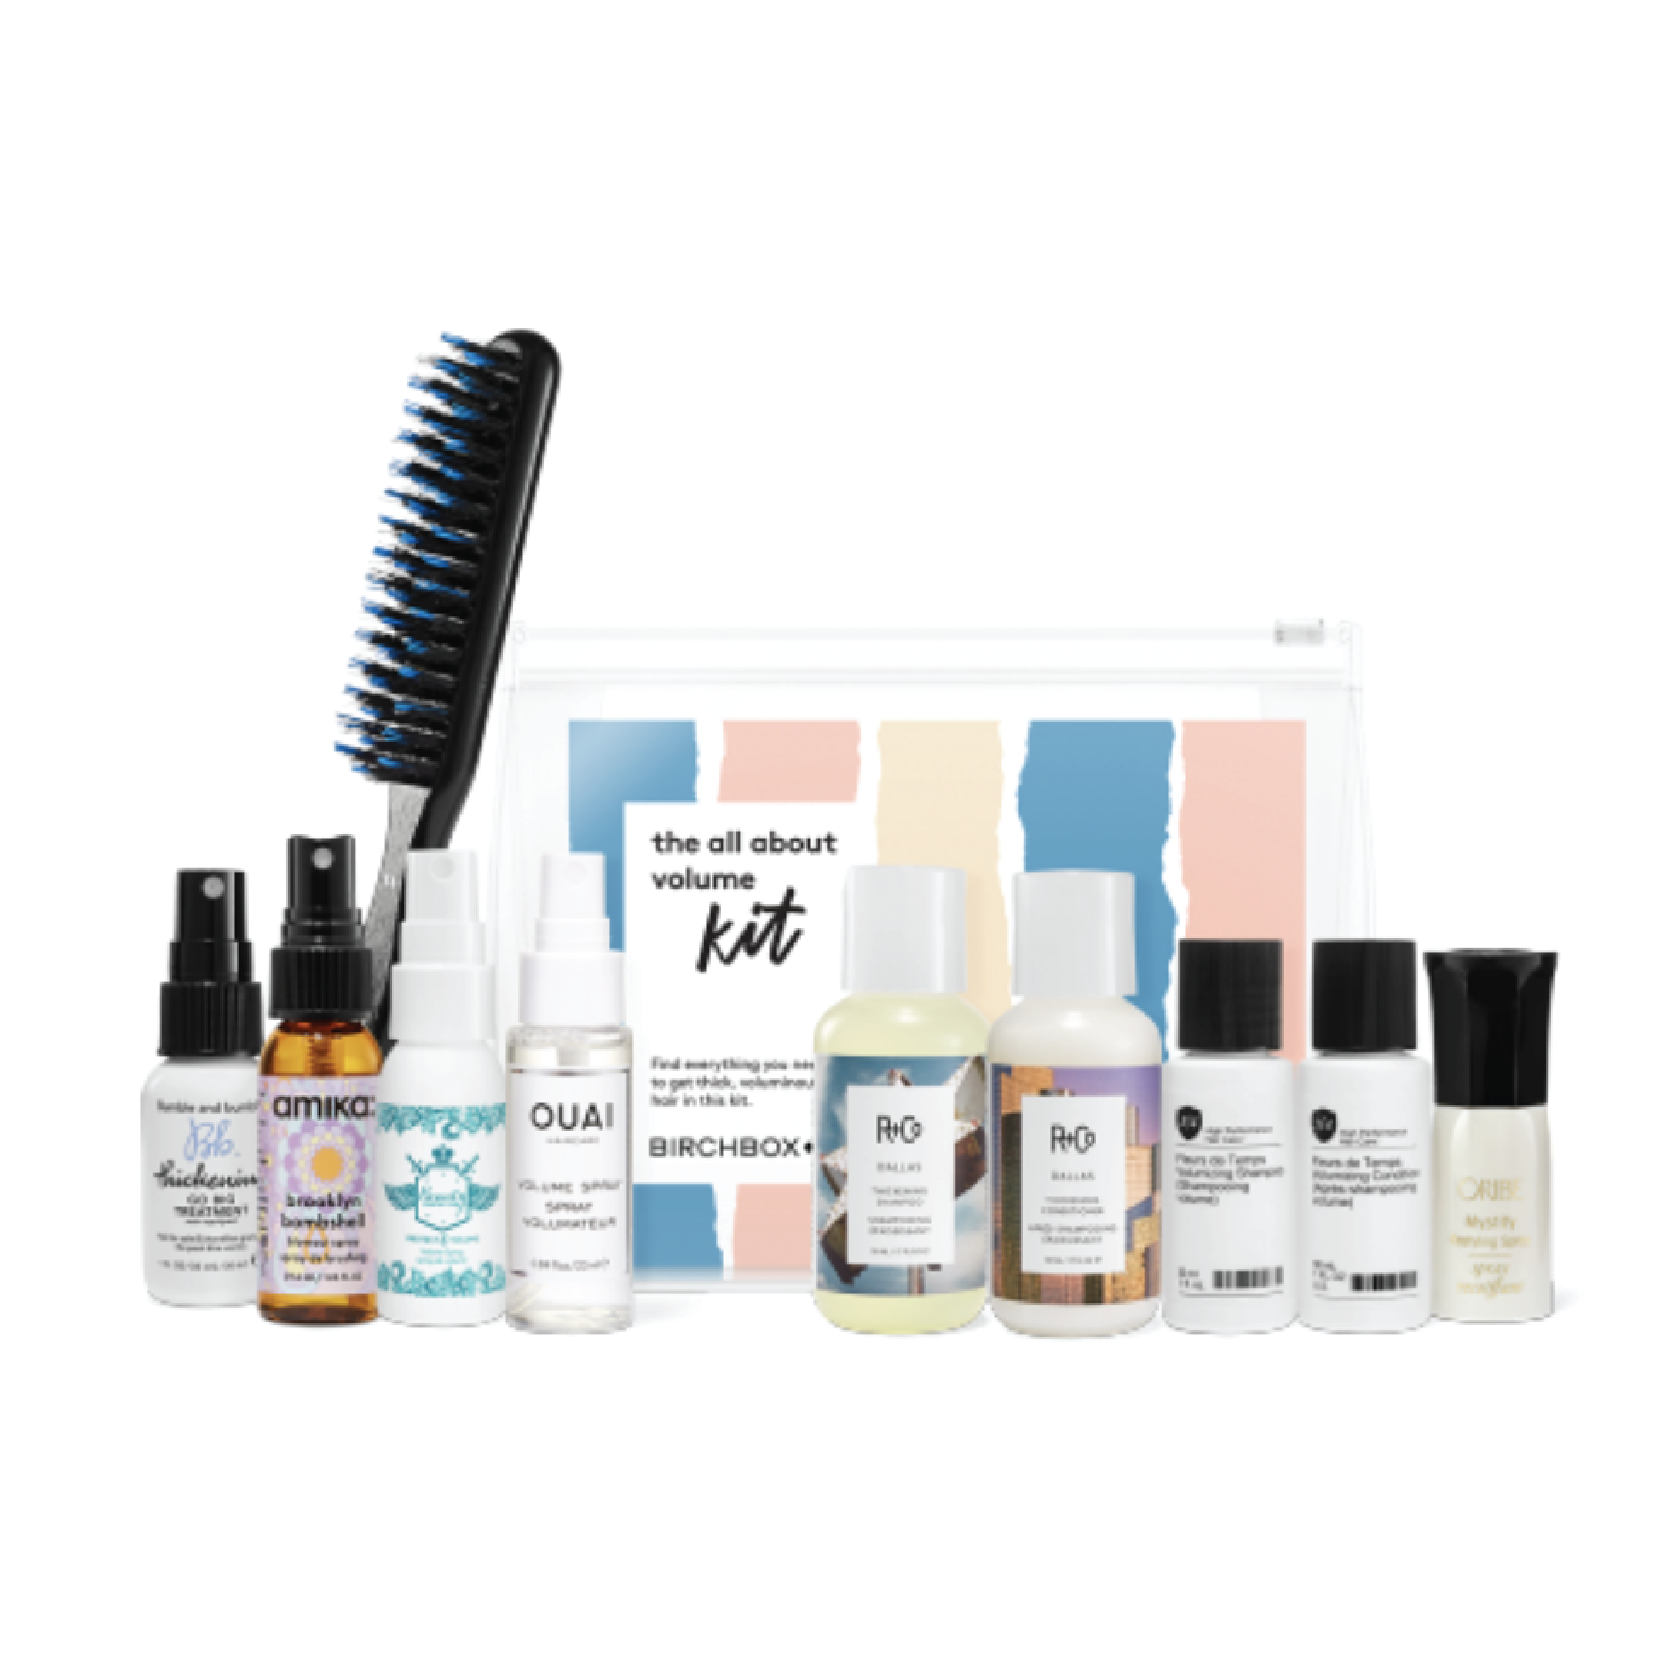 Birchbox All About Volume Kit - $30 at BirchboxKnow someone who loves to keep their hair as big as Texas? This is a great gift to introduce someone to new finds or gift them some minis of their favorite products.